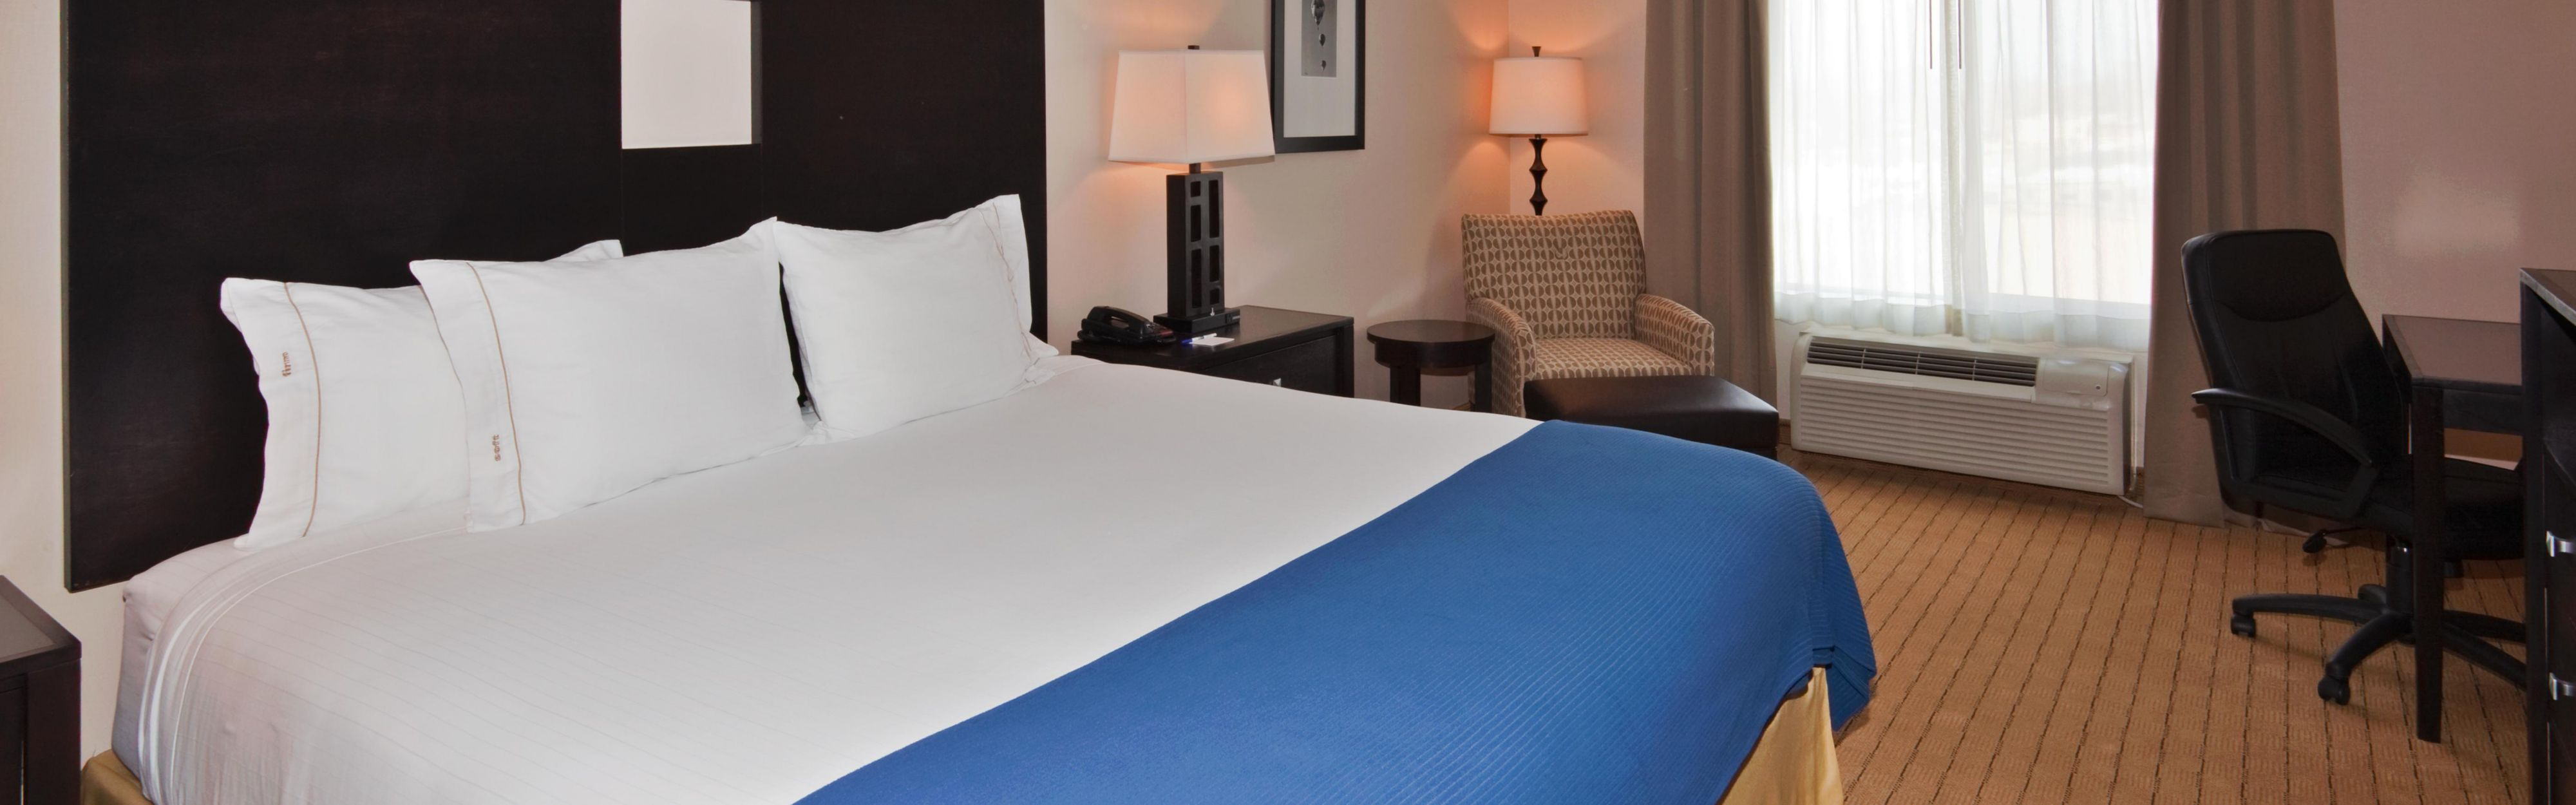 Holiday Inn Express & Suites Albuquerque Airport image 1